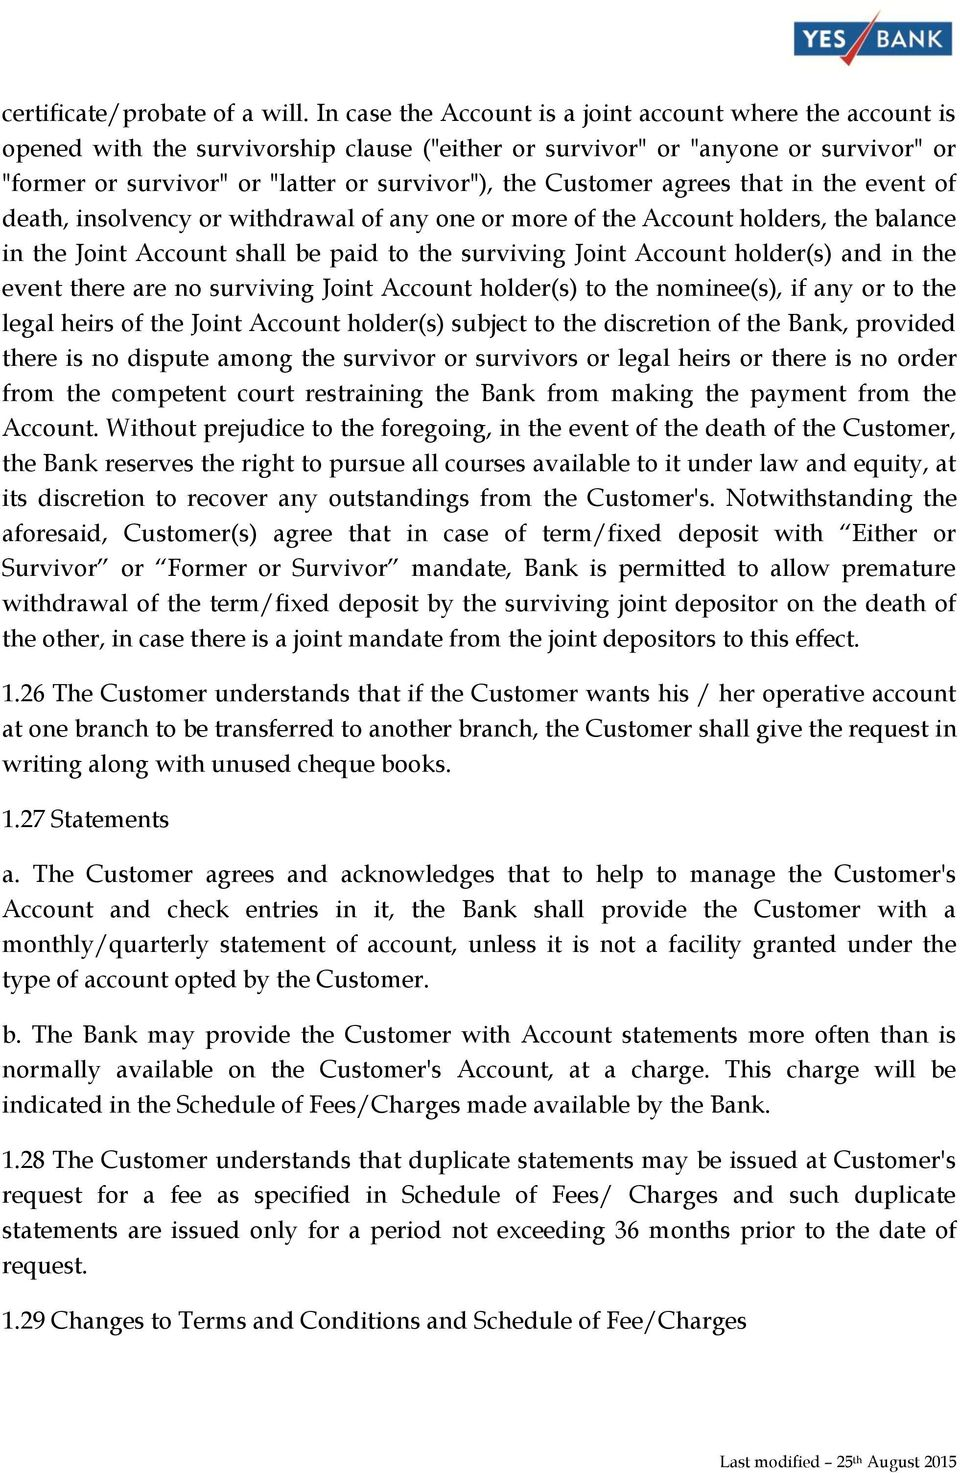 Customer agrees that in the event of death, insolvency or withdrawal of any one or more of the Account holders, the balance in the Joint Account shall be paid to the surviving Joint Account holder(s)